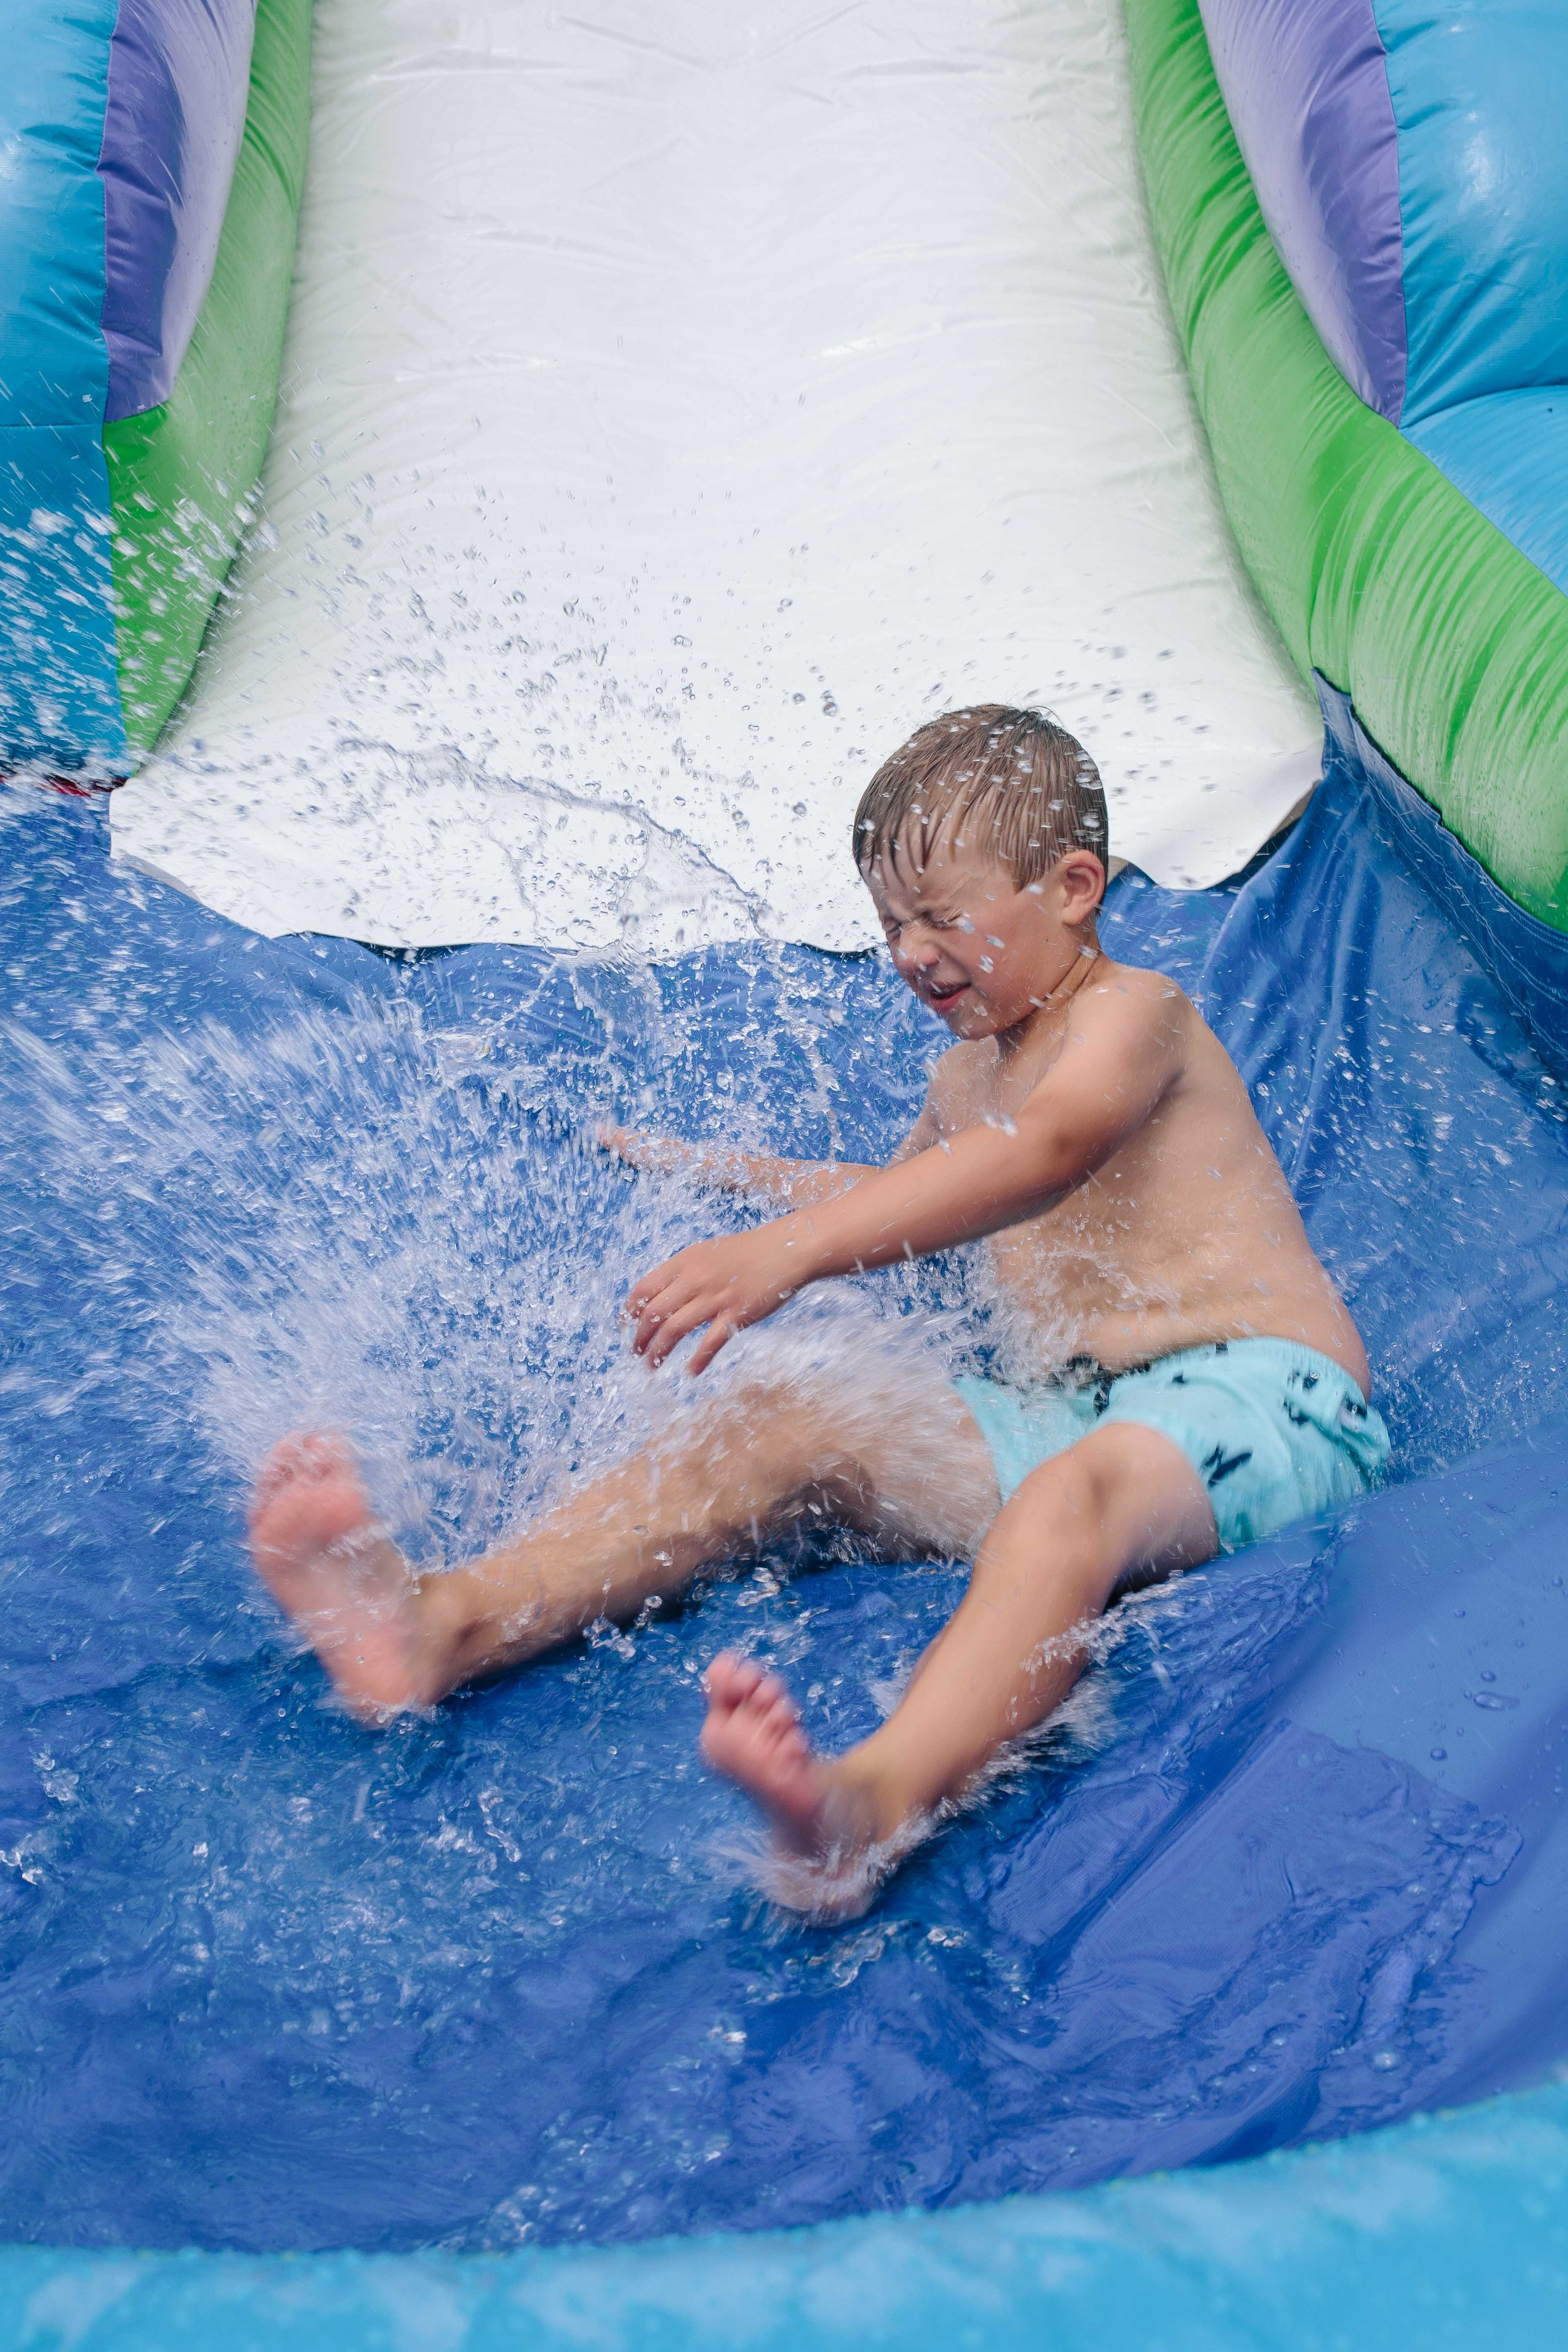 Big brother had fun all afternoon on the jump house water slide with the other big kids!